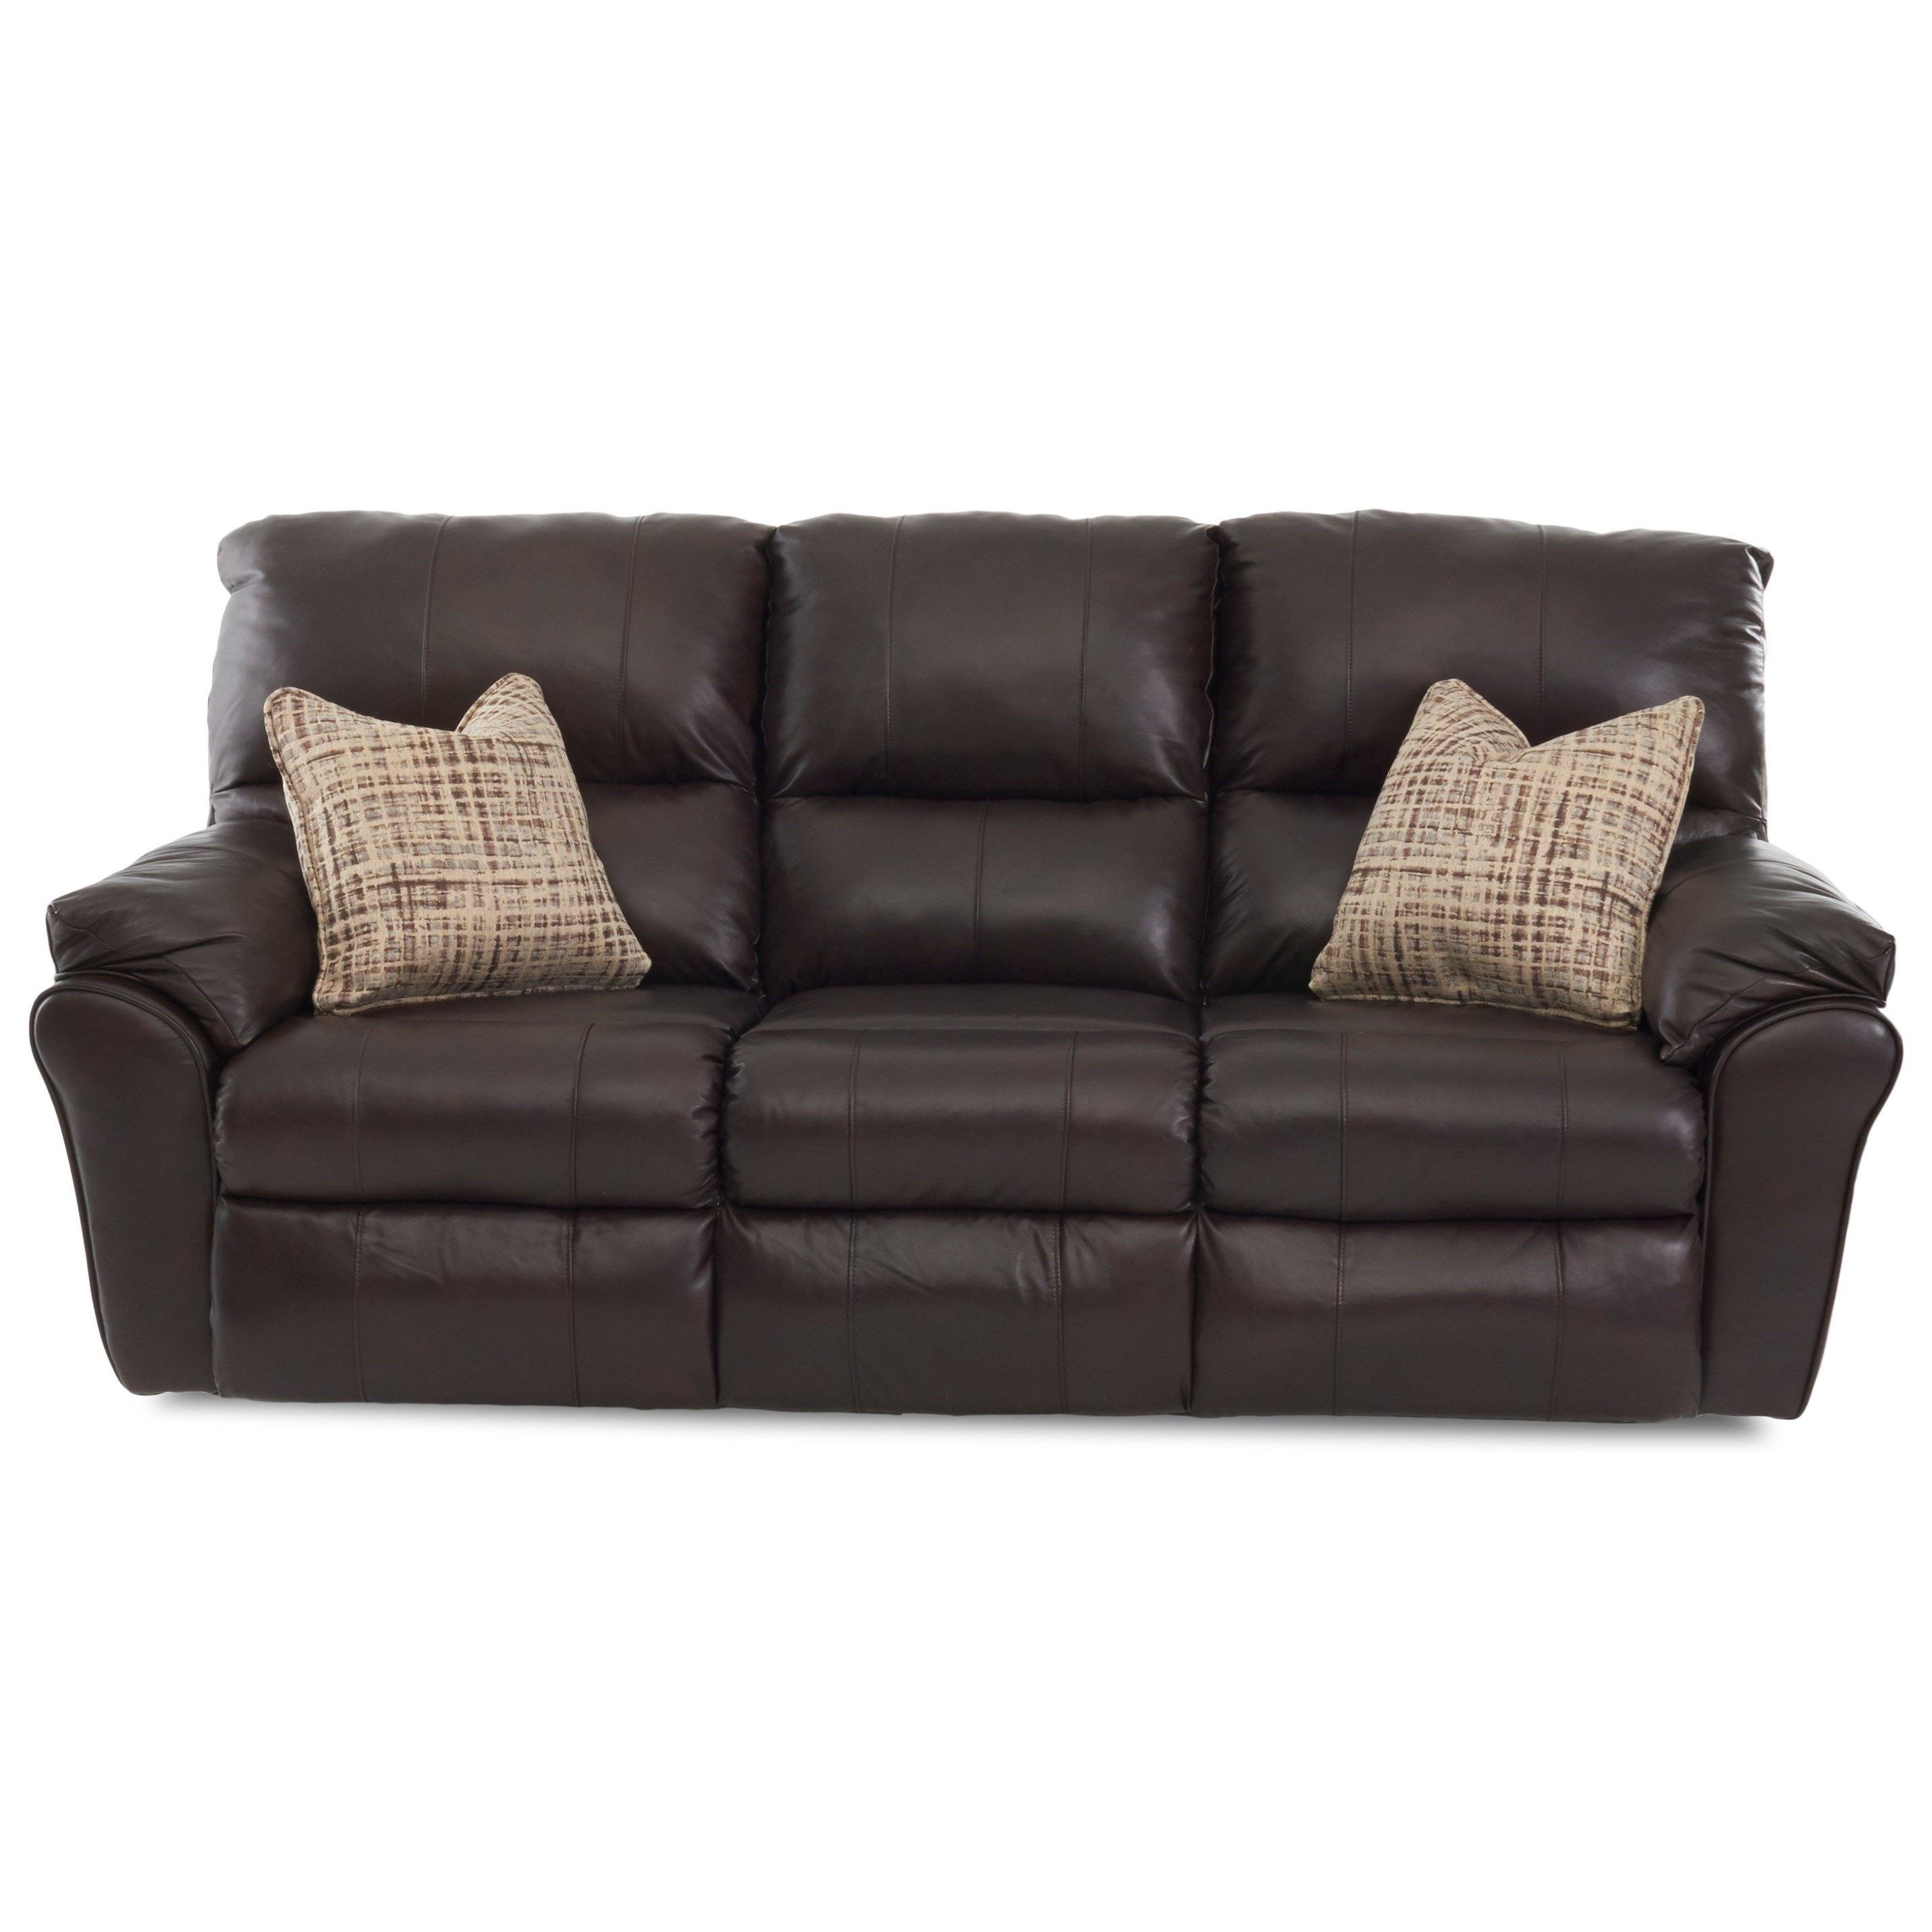 Casual Reclining Sofa with 2 Power Chairs & 1 Manual Chair and Pillows